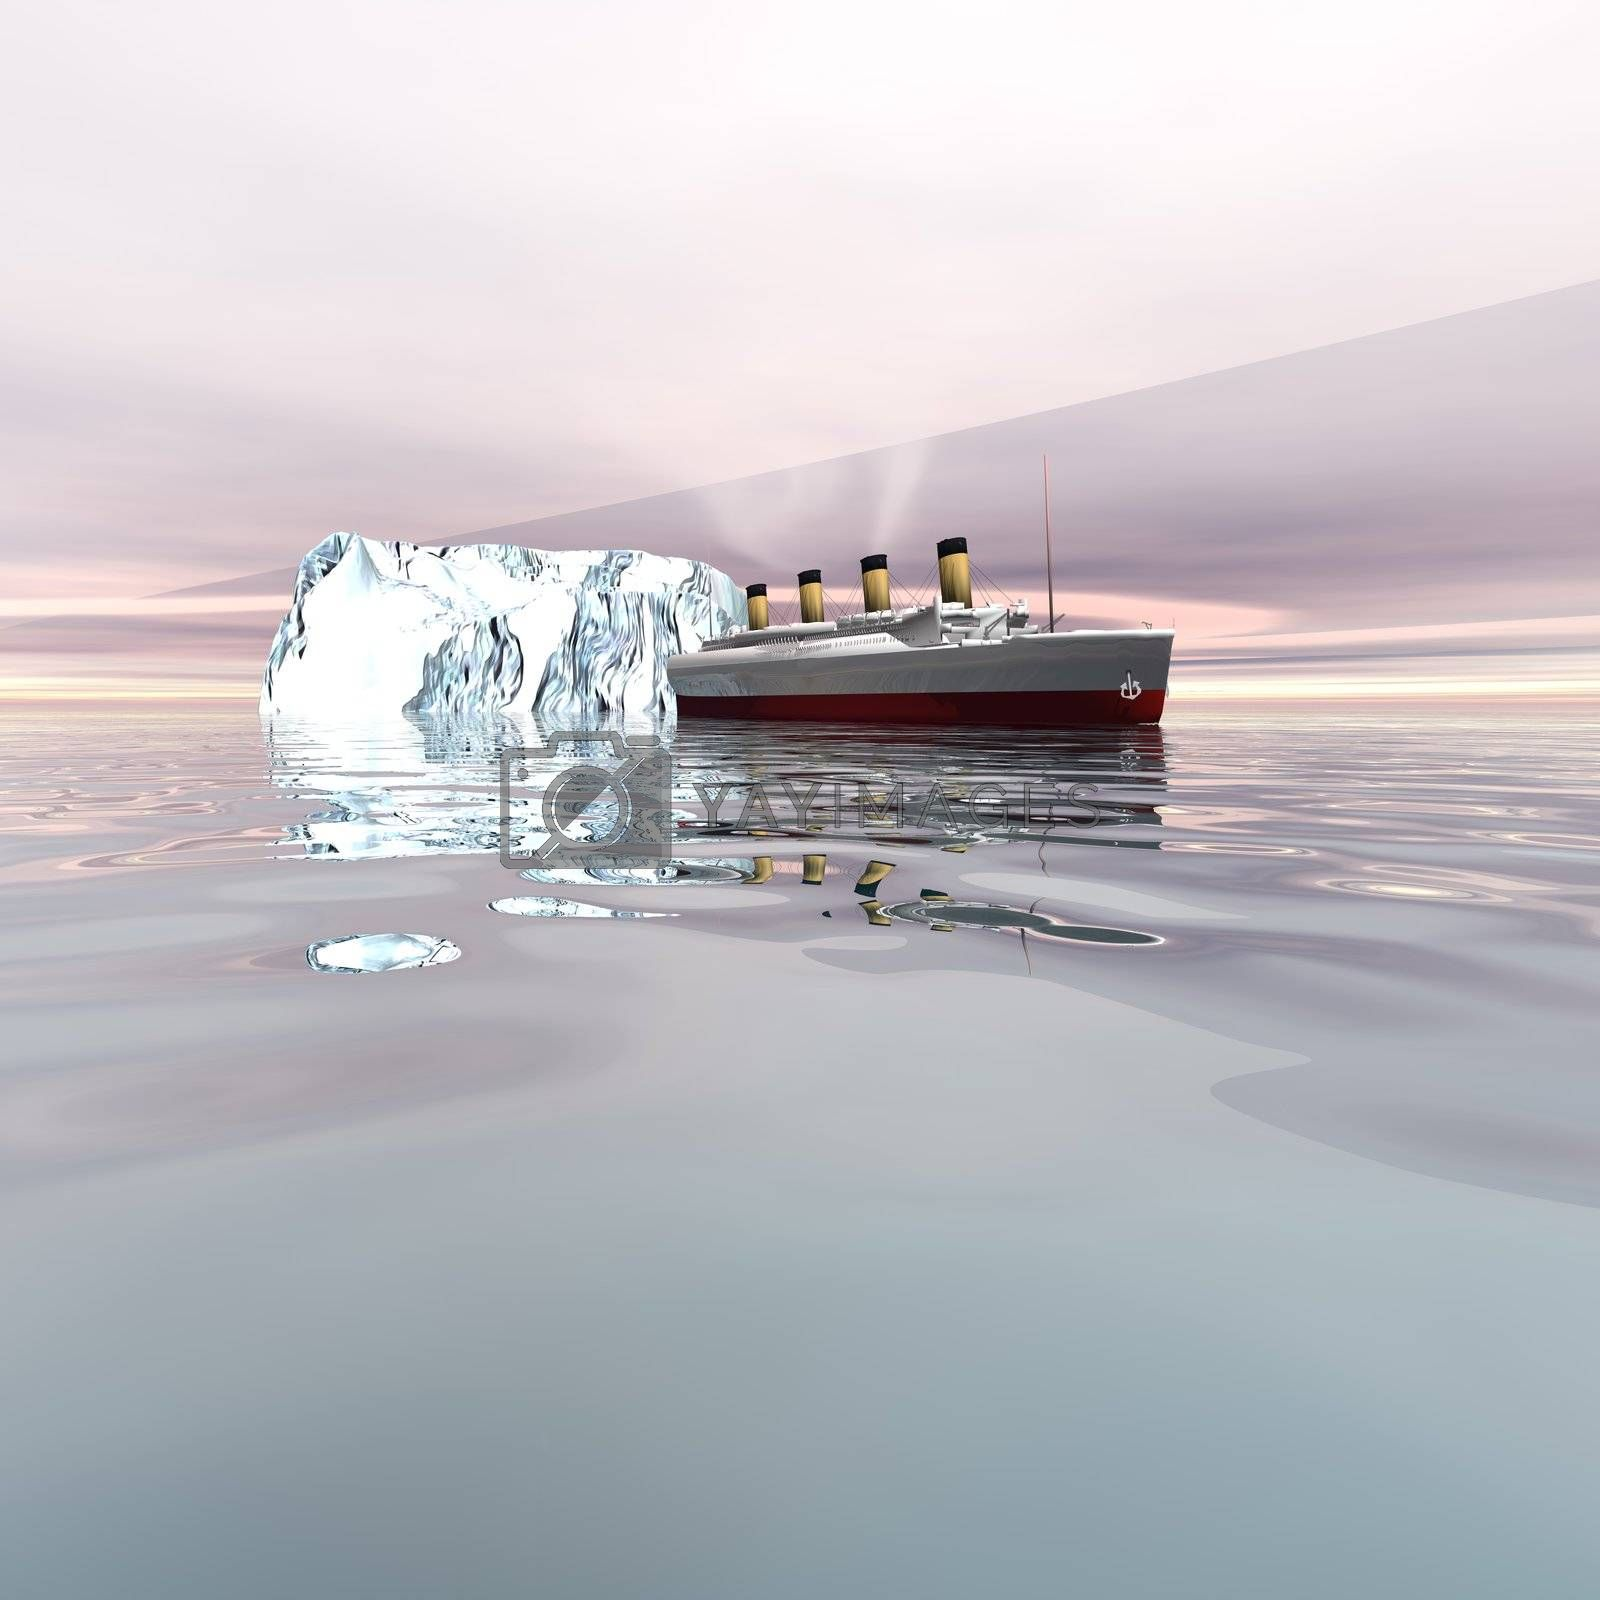 The beautiful ocean liner near icebergs in the north Atlantic ocean.